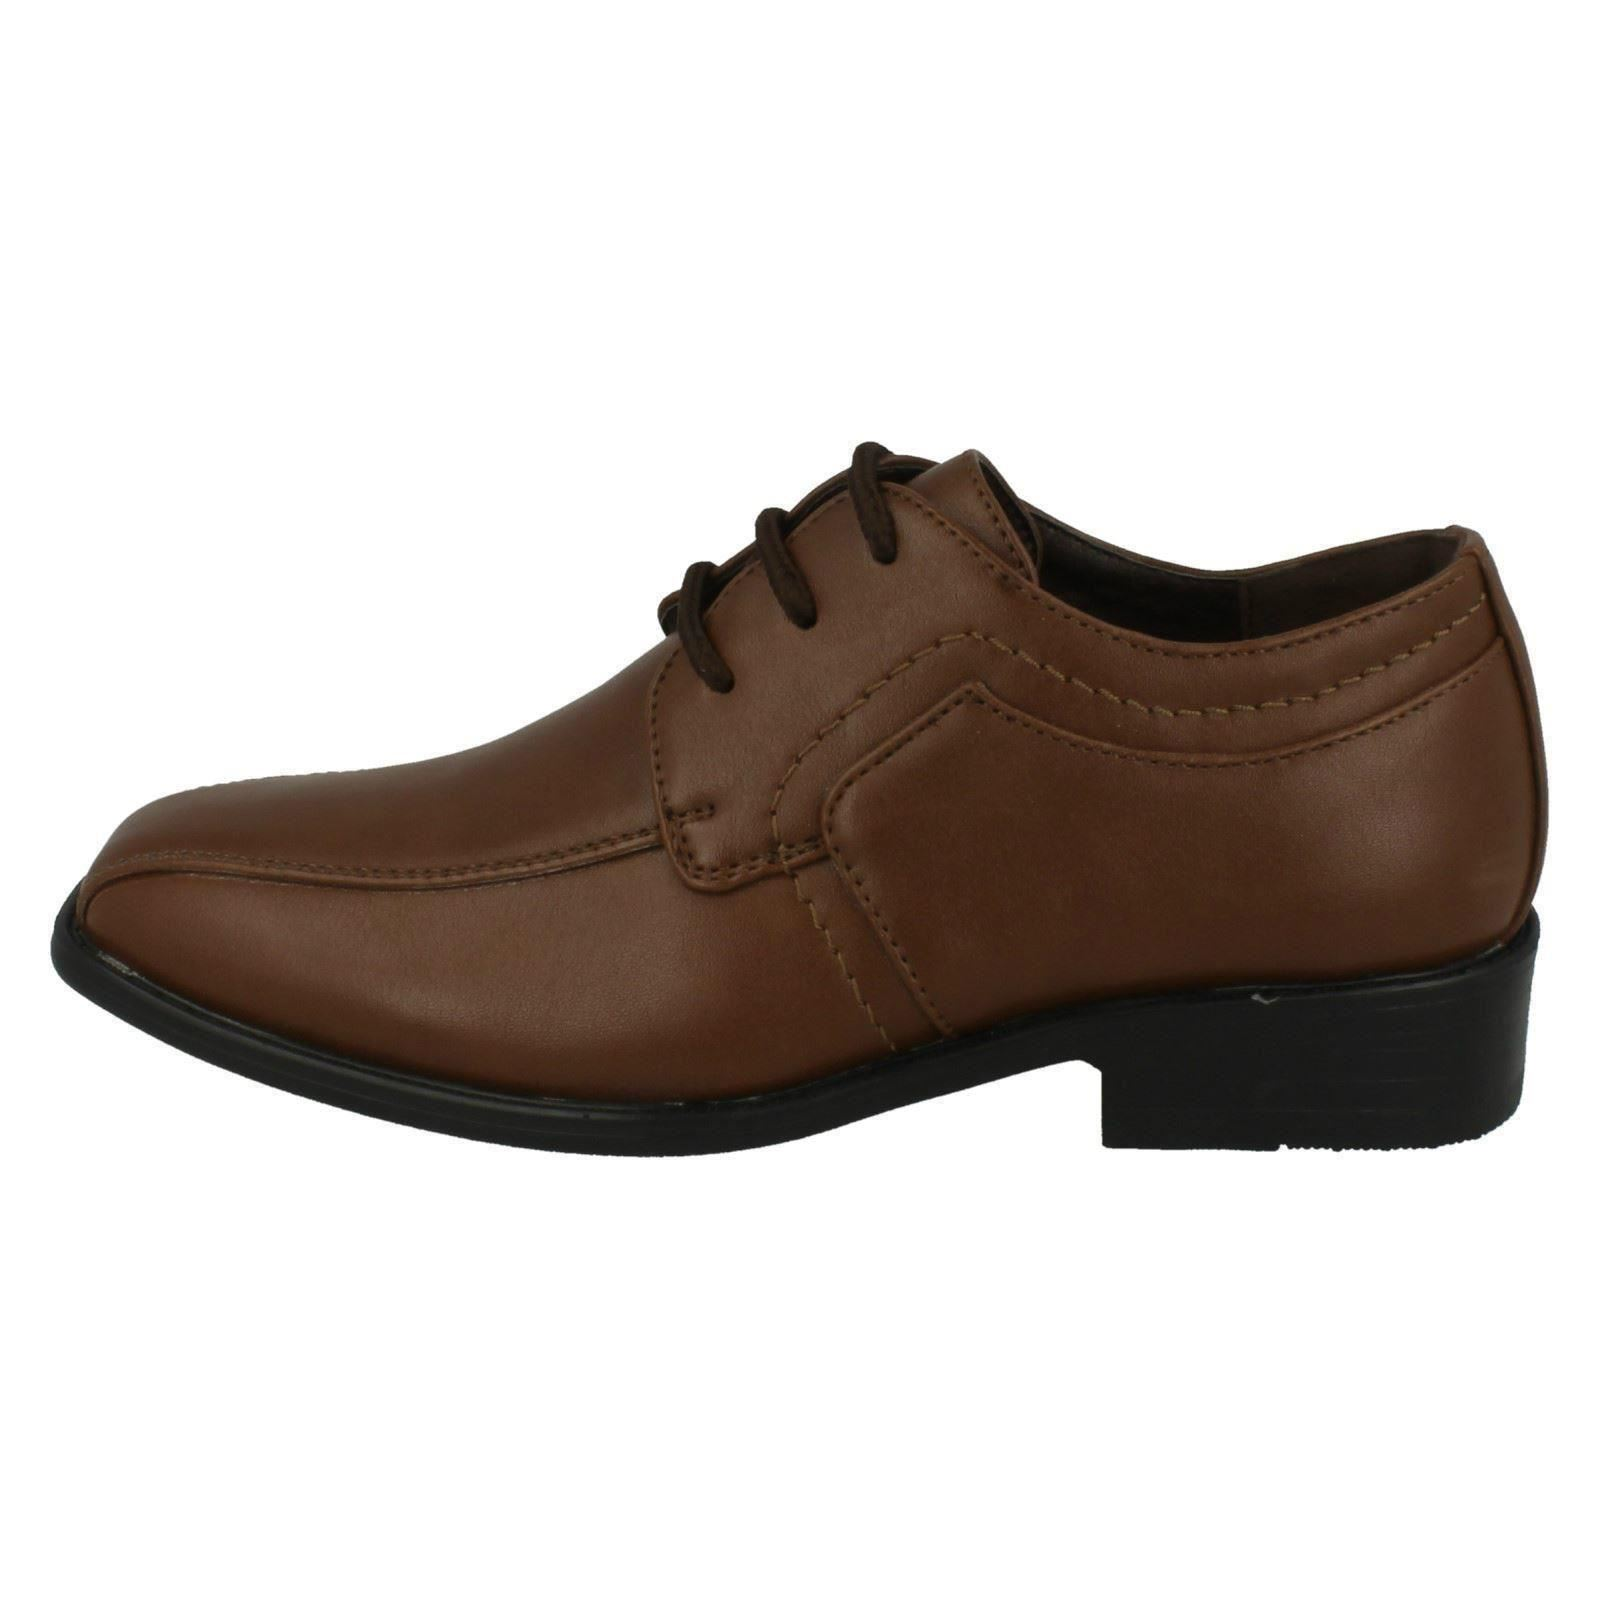 JCDees Childrens Boys Trendy Lace Up Formal Shoes